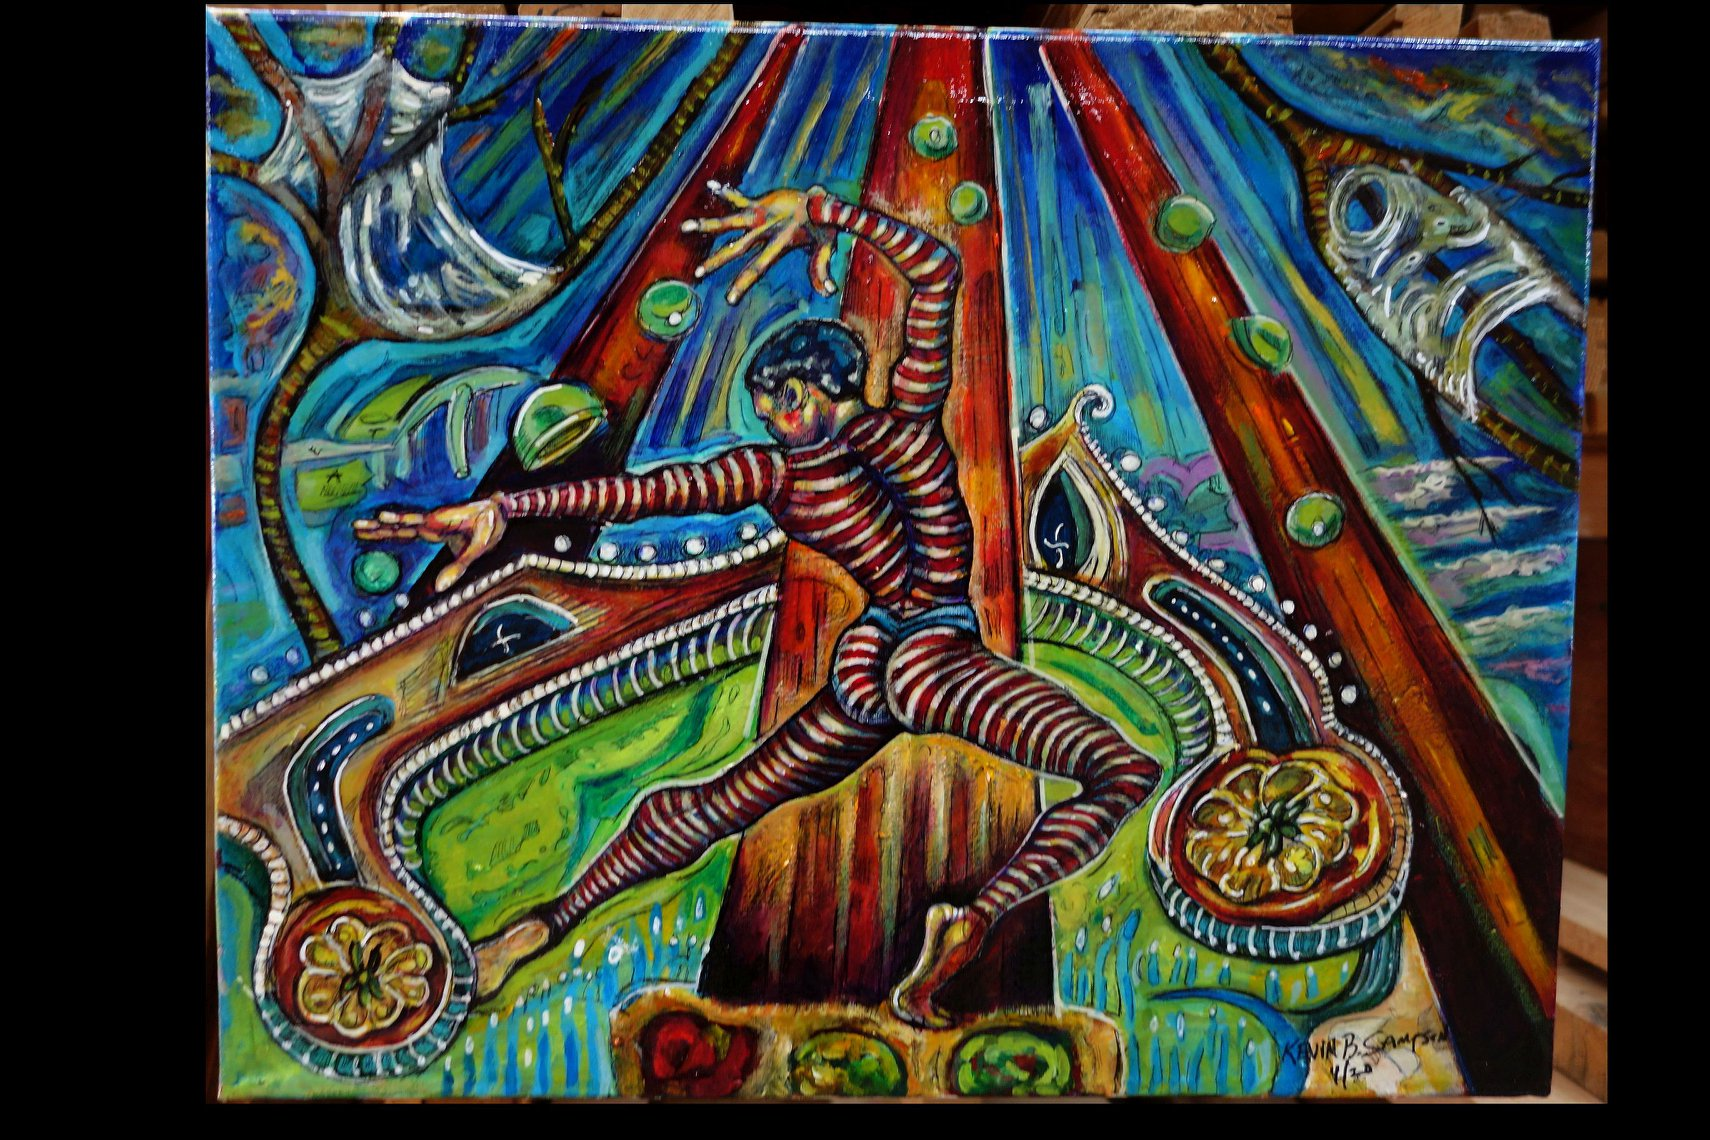 """""""Natarja, Lord of the Dance"""" by Kevin Blythe Sampson"""